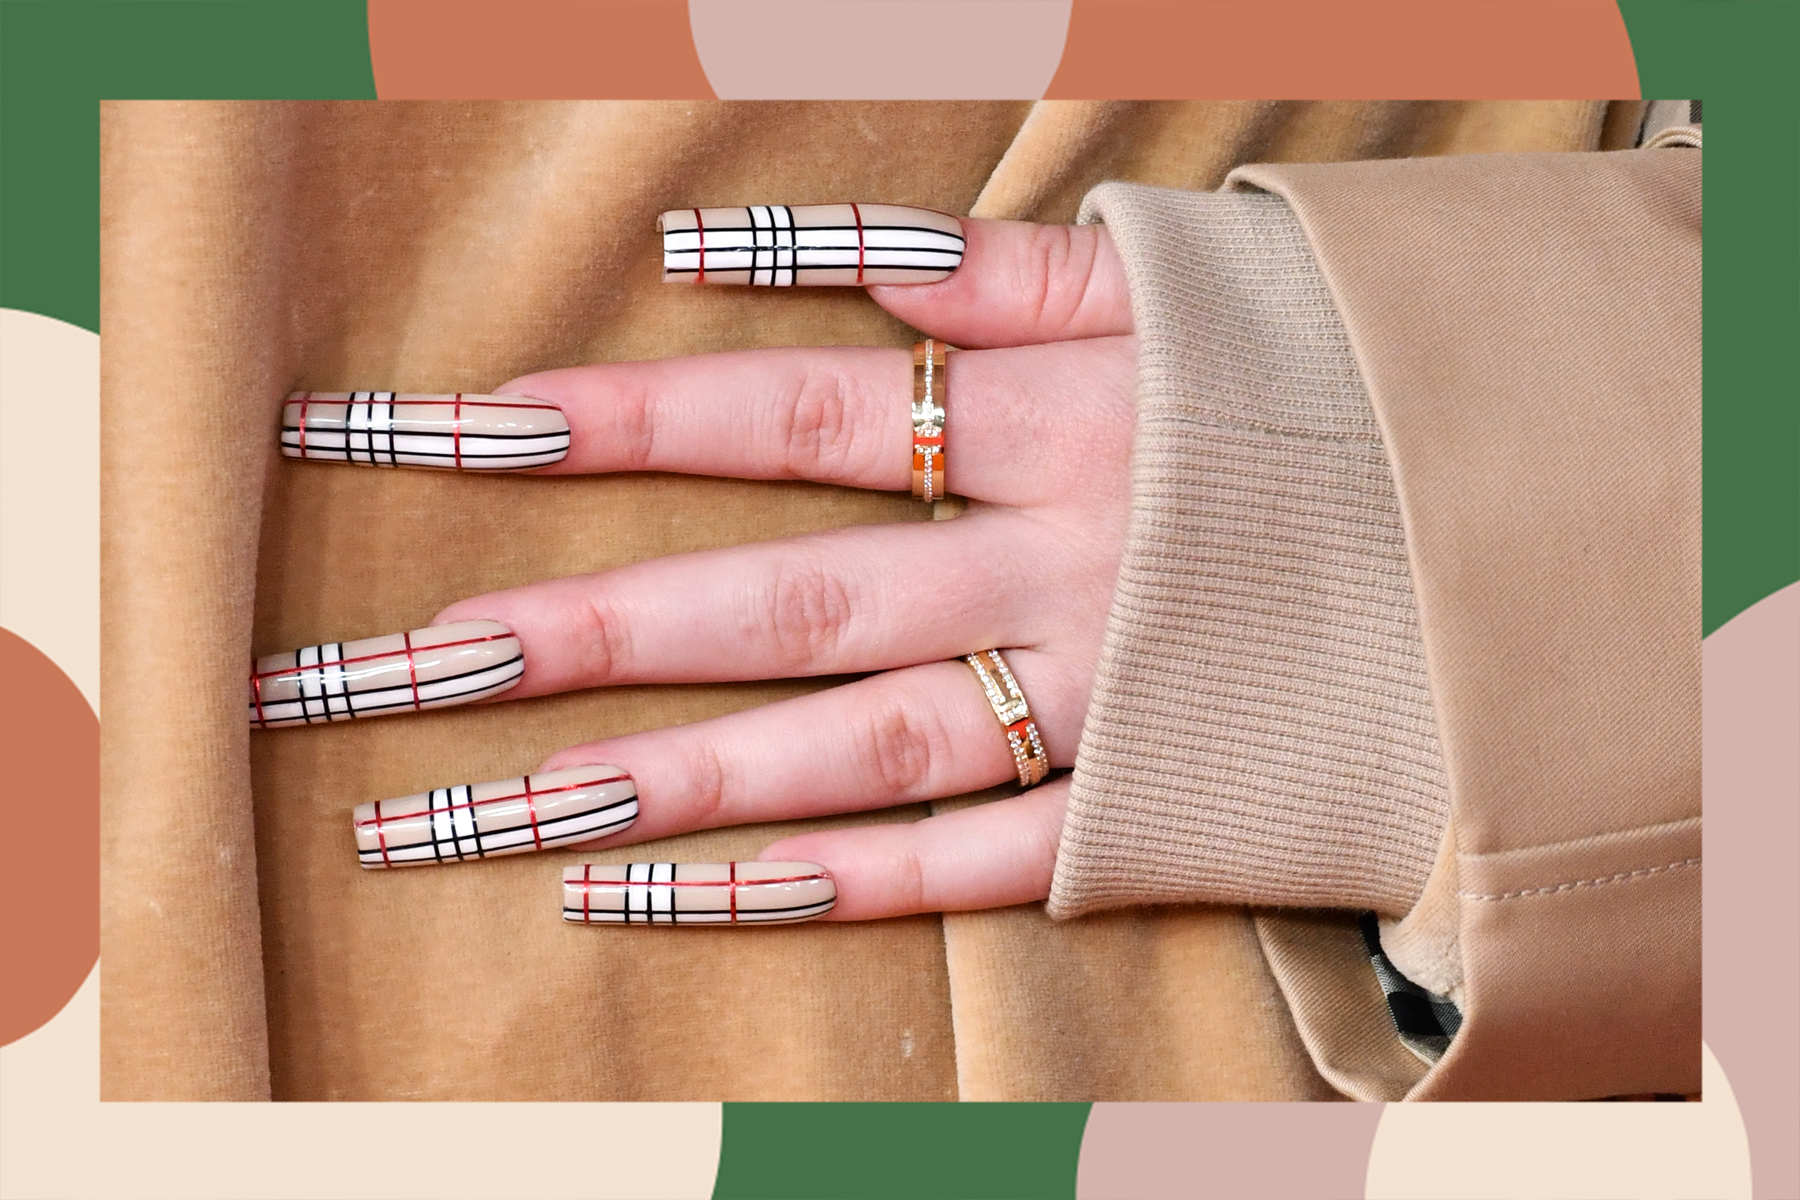 acrylic nails appropriation